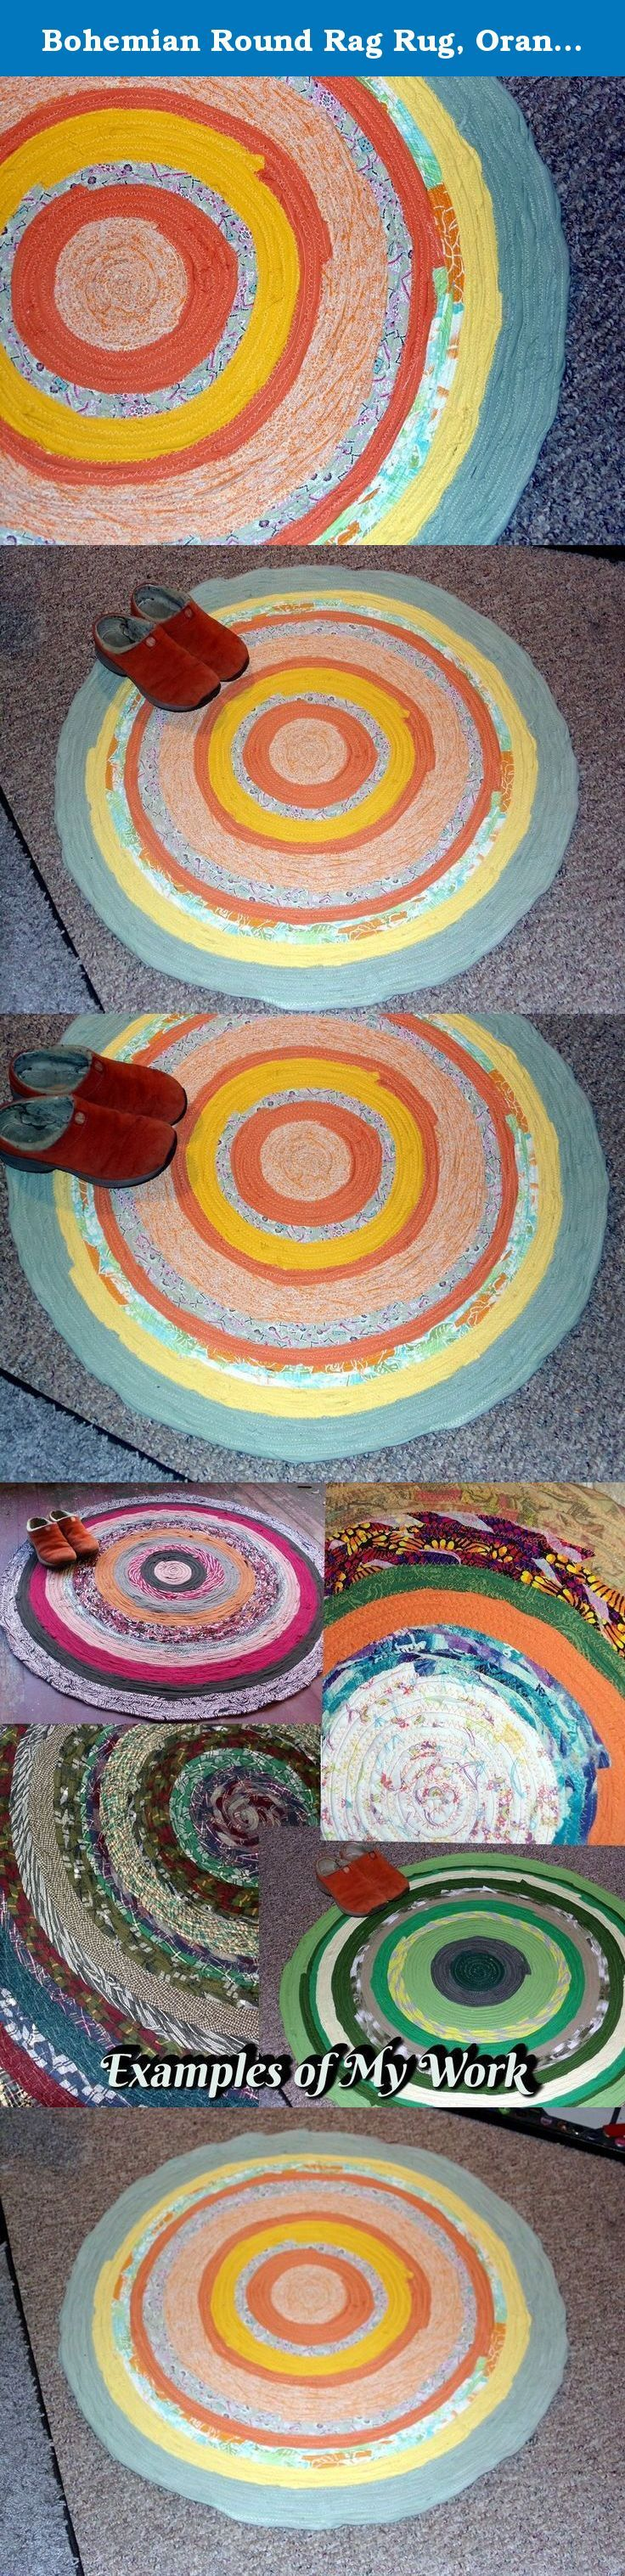 Bohemian Round Rag Rug, Orange Tones, Circle Rug, Gypsy Round Wall Hanging, Mandala Rug Art, Round Braided Rug, Upcycled Rug Floor Covering. Round Rag Rug, Round Wall Hanging, Mandala Rug Wall Art, Round Braid Rug, Upcycled Clothing Rug Carpet Floor Covering This mandala style bohemian rug shown measures about 3 feet (36 inches) in diameter as shown. Perfect size for large mandala wall art or a great throw rug. The rug shown is finished and available to ship now. Round Rug made in the rag...